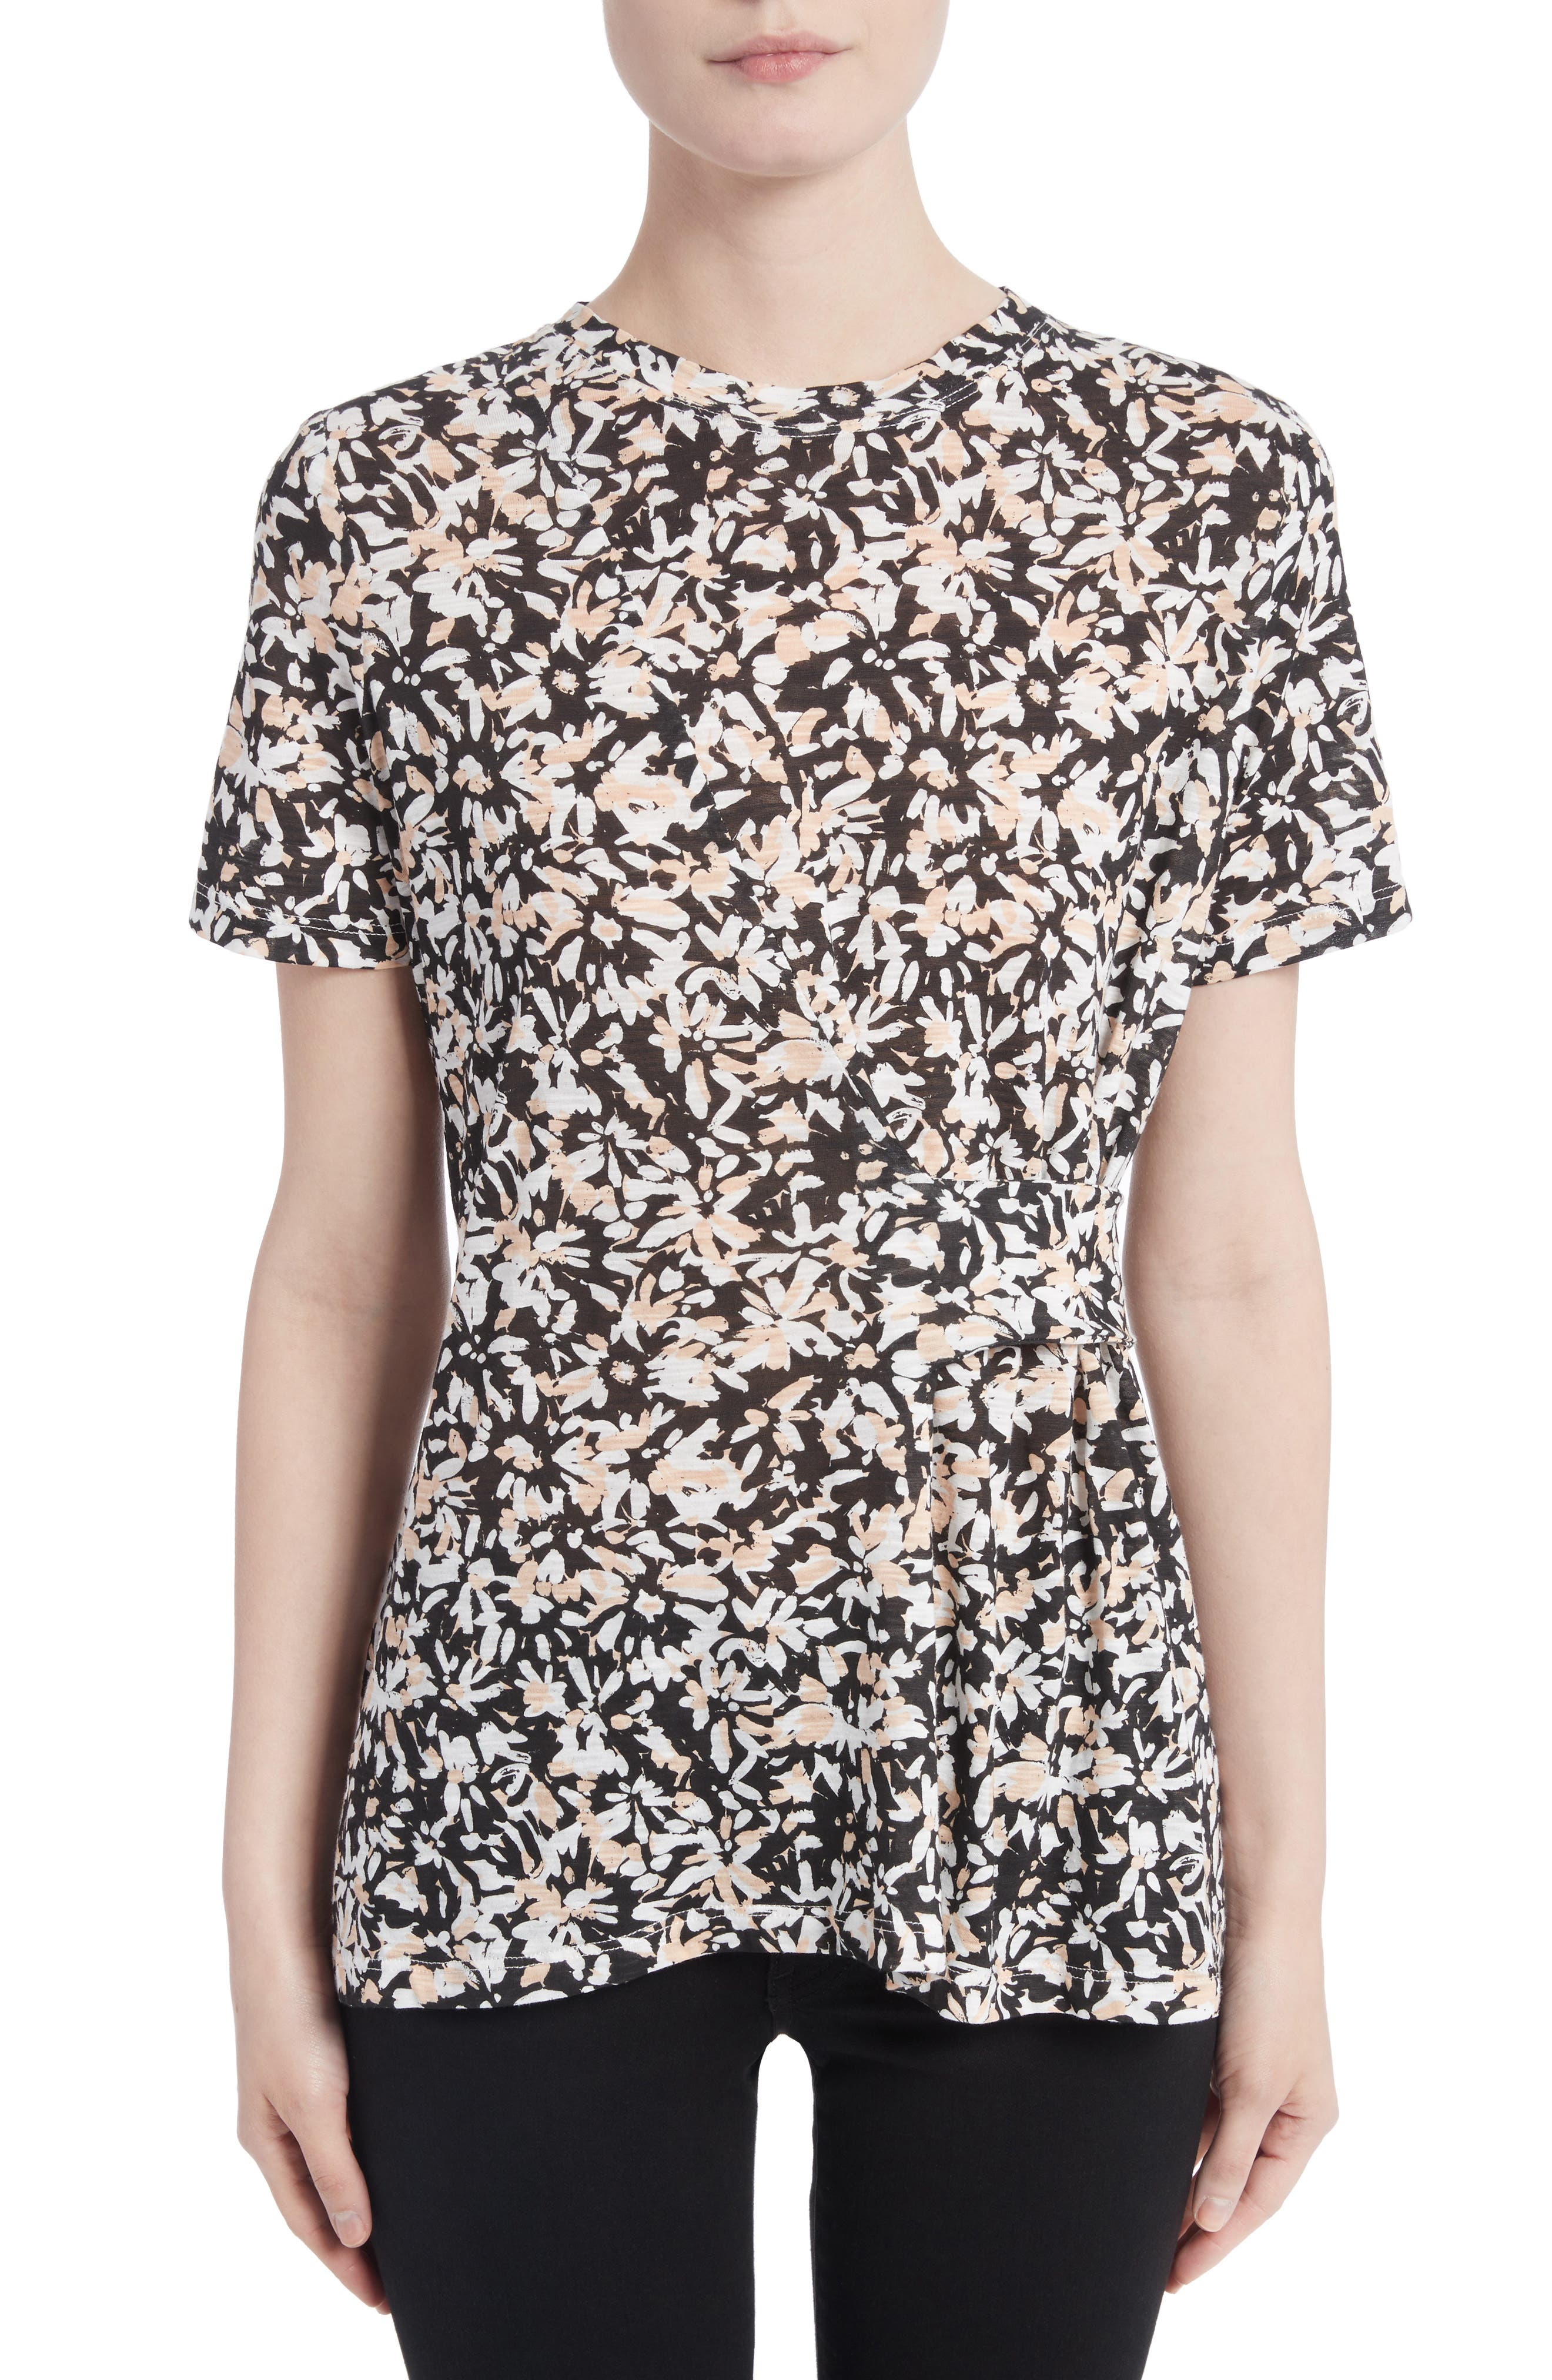 Band Detail Print Tissue Jersey Tee,                             Main thumbnail 1, color,                             Nude/ Black Painted Floral